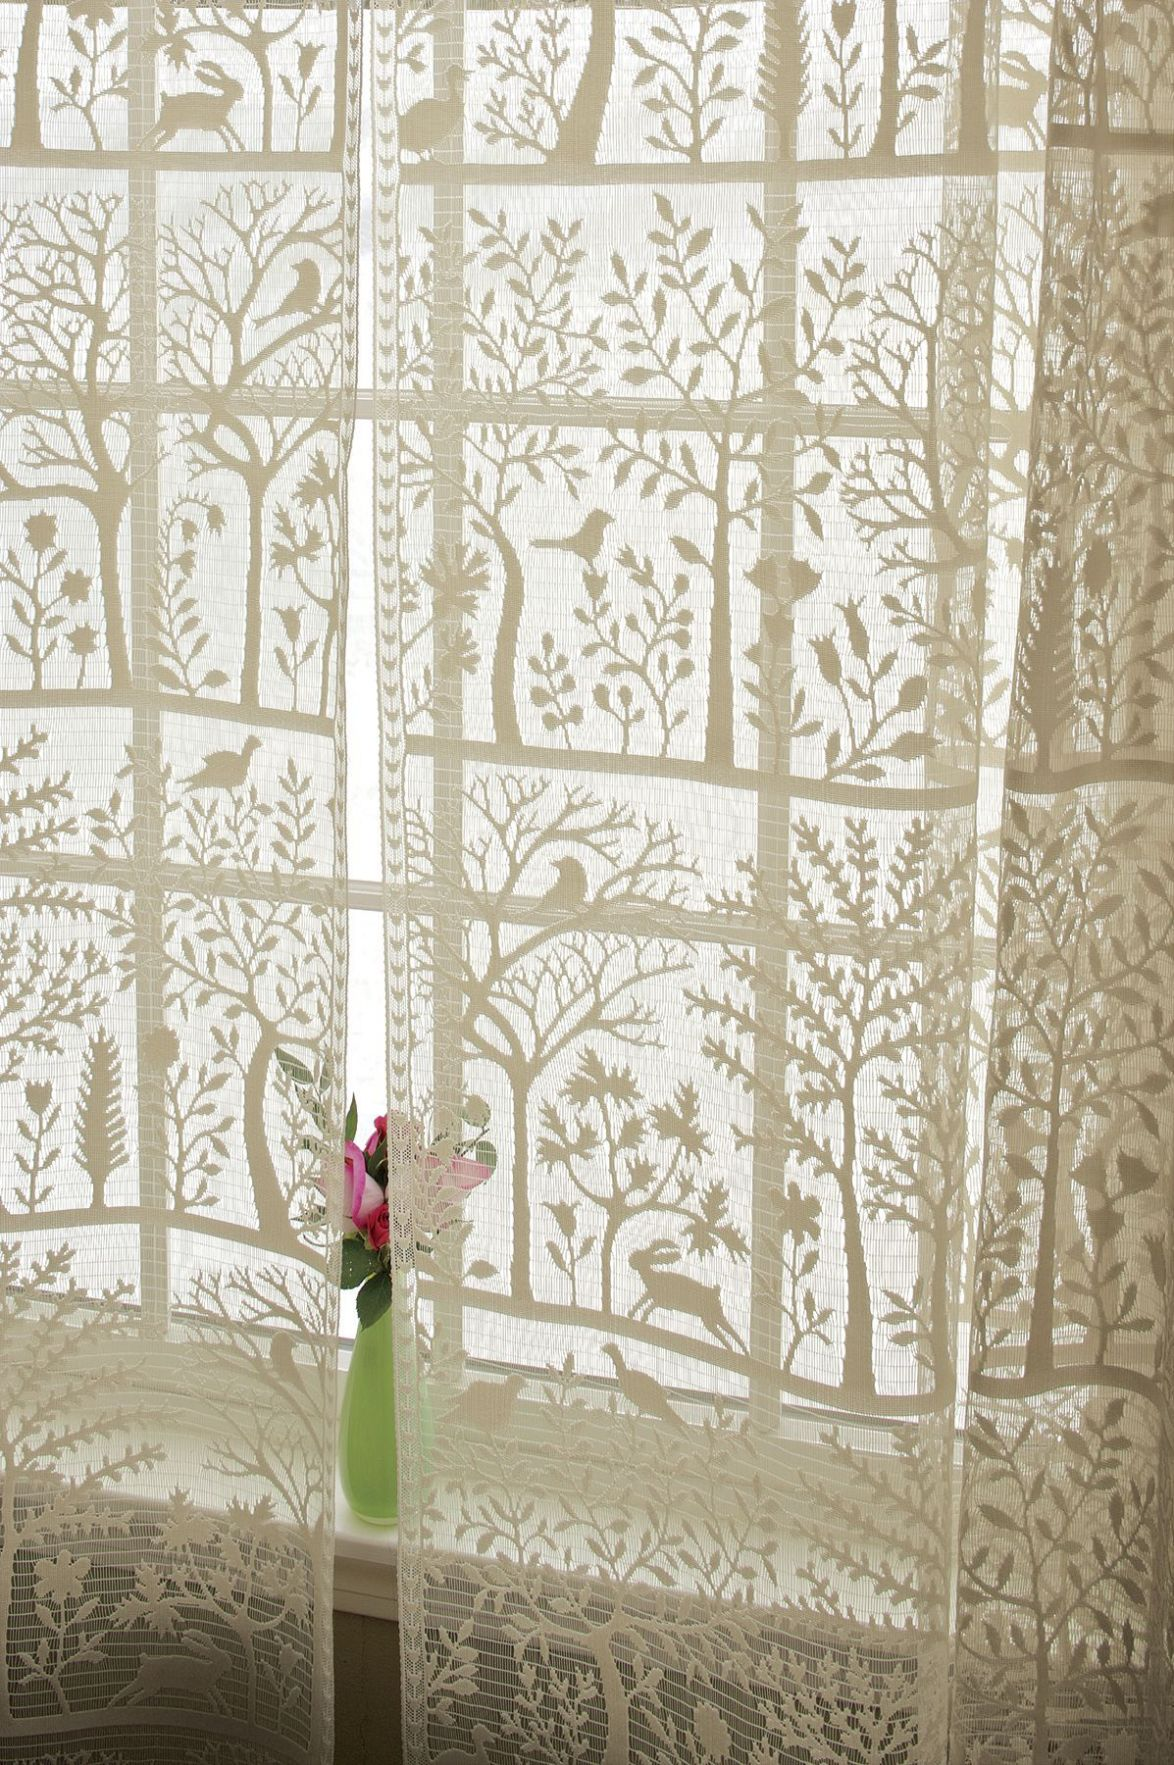 Let the sun shine in: Cleaning windows, window treatments